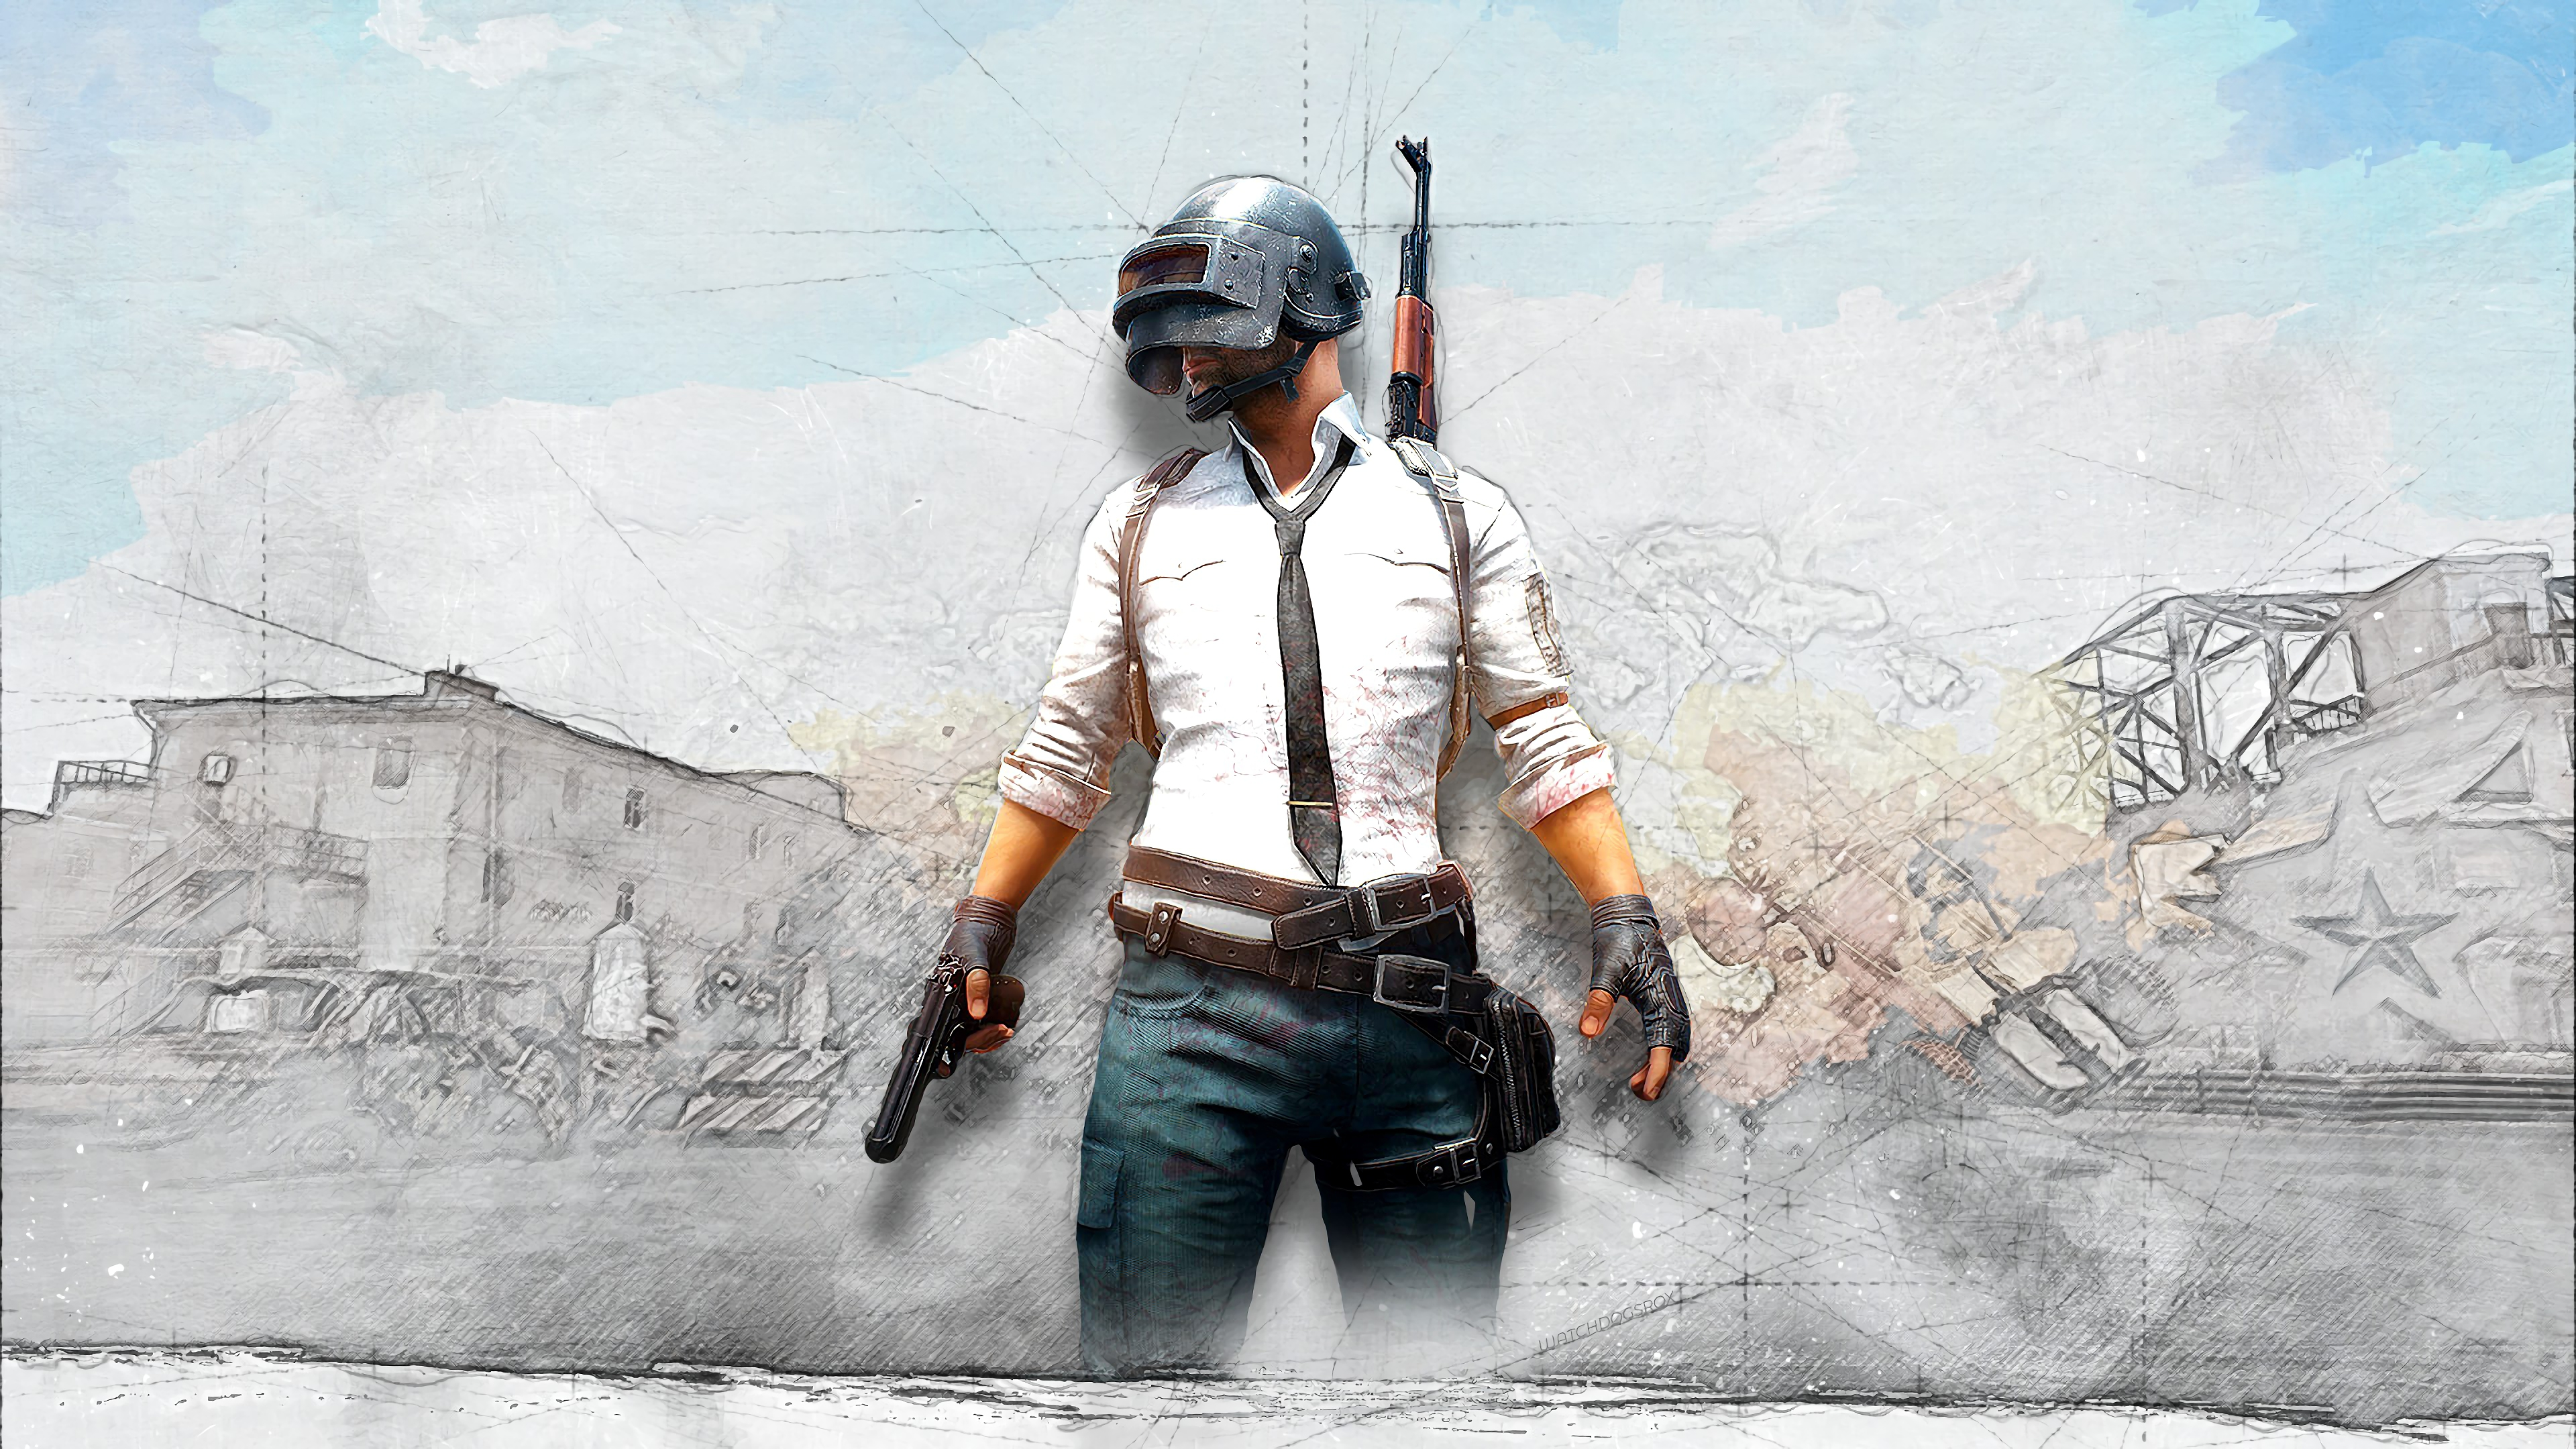 Pubg Christmas Wallpaper: PUBG PlayerUnknown's Battlegrounds Game 4K Wallpaper